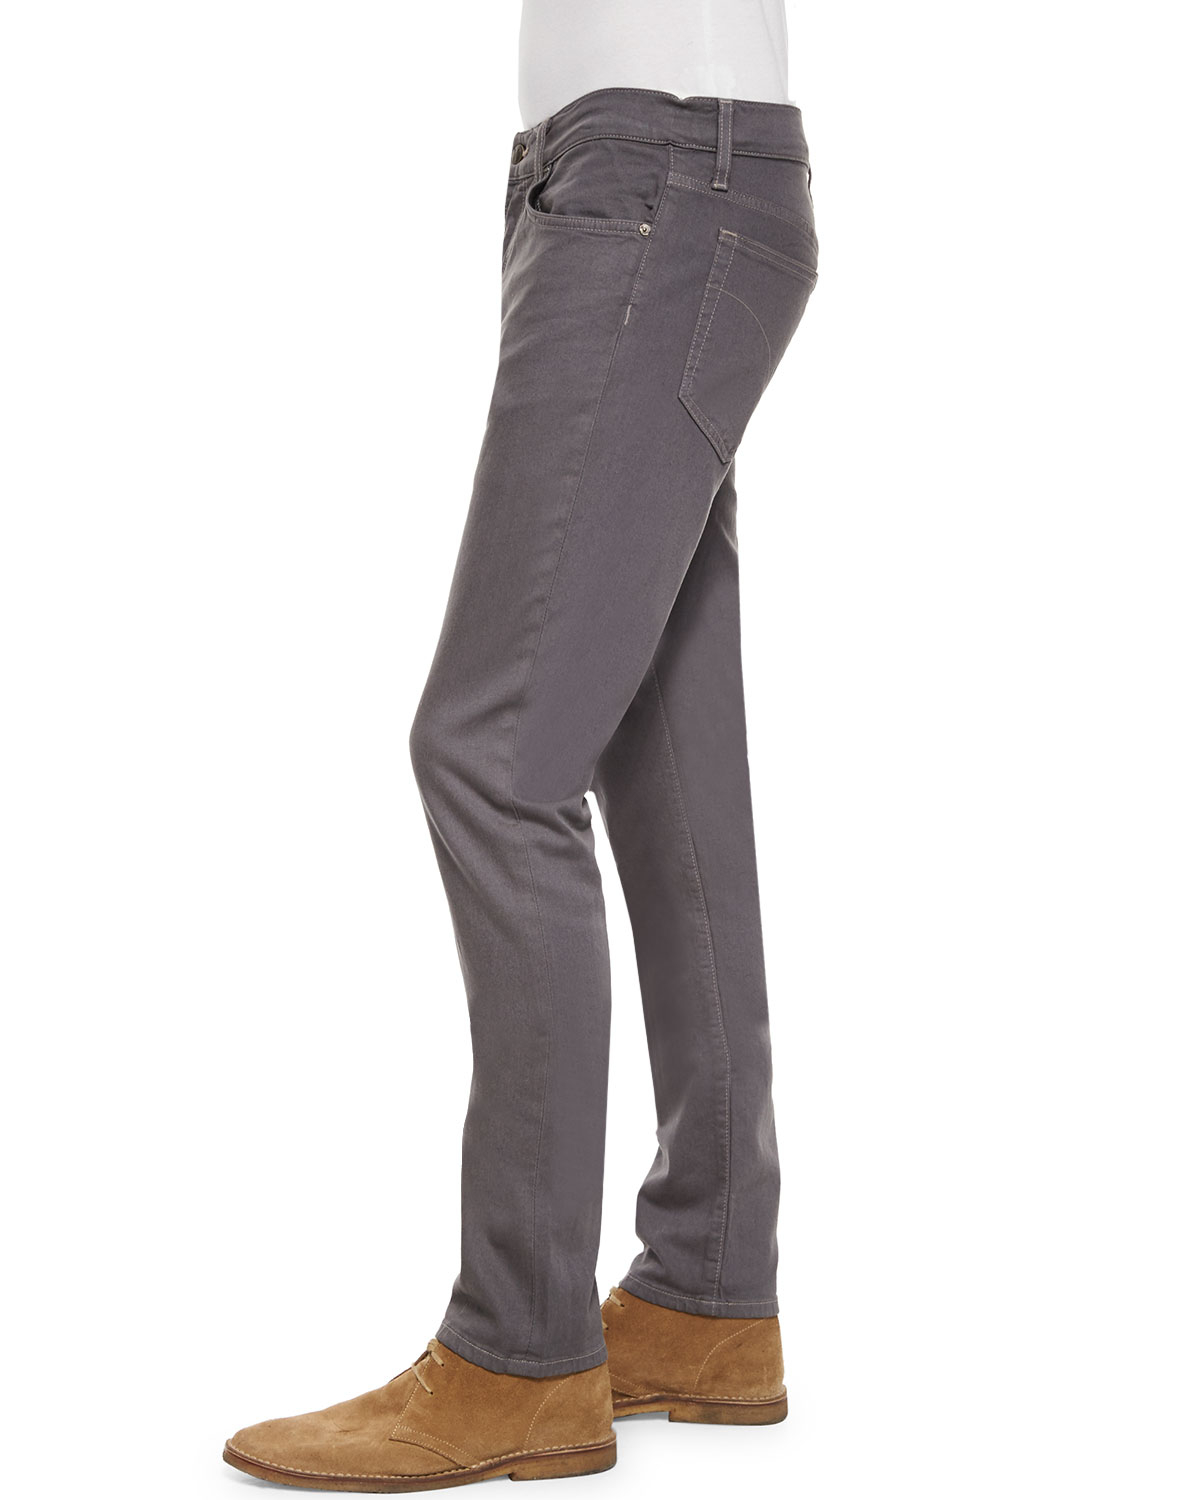 Lyst - Joe s Jeans Brixton Straight-narrow Twill Jeans in Gray for Men a0c3cf6e1f4